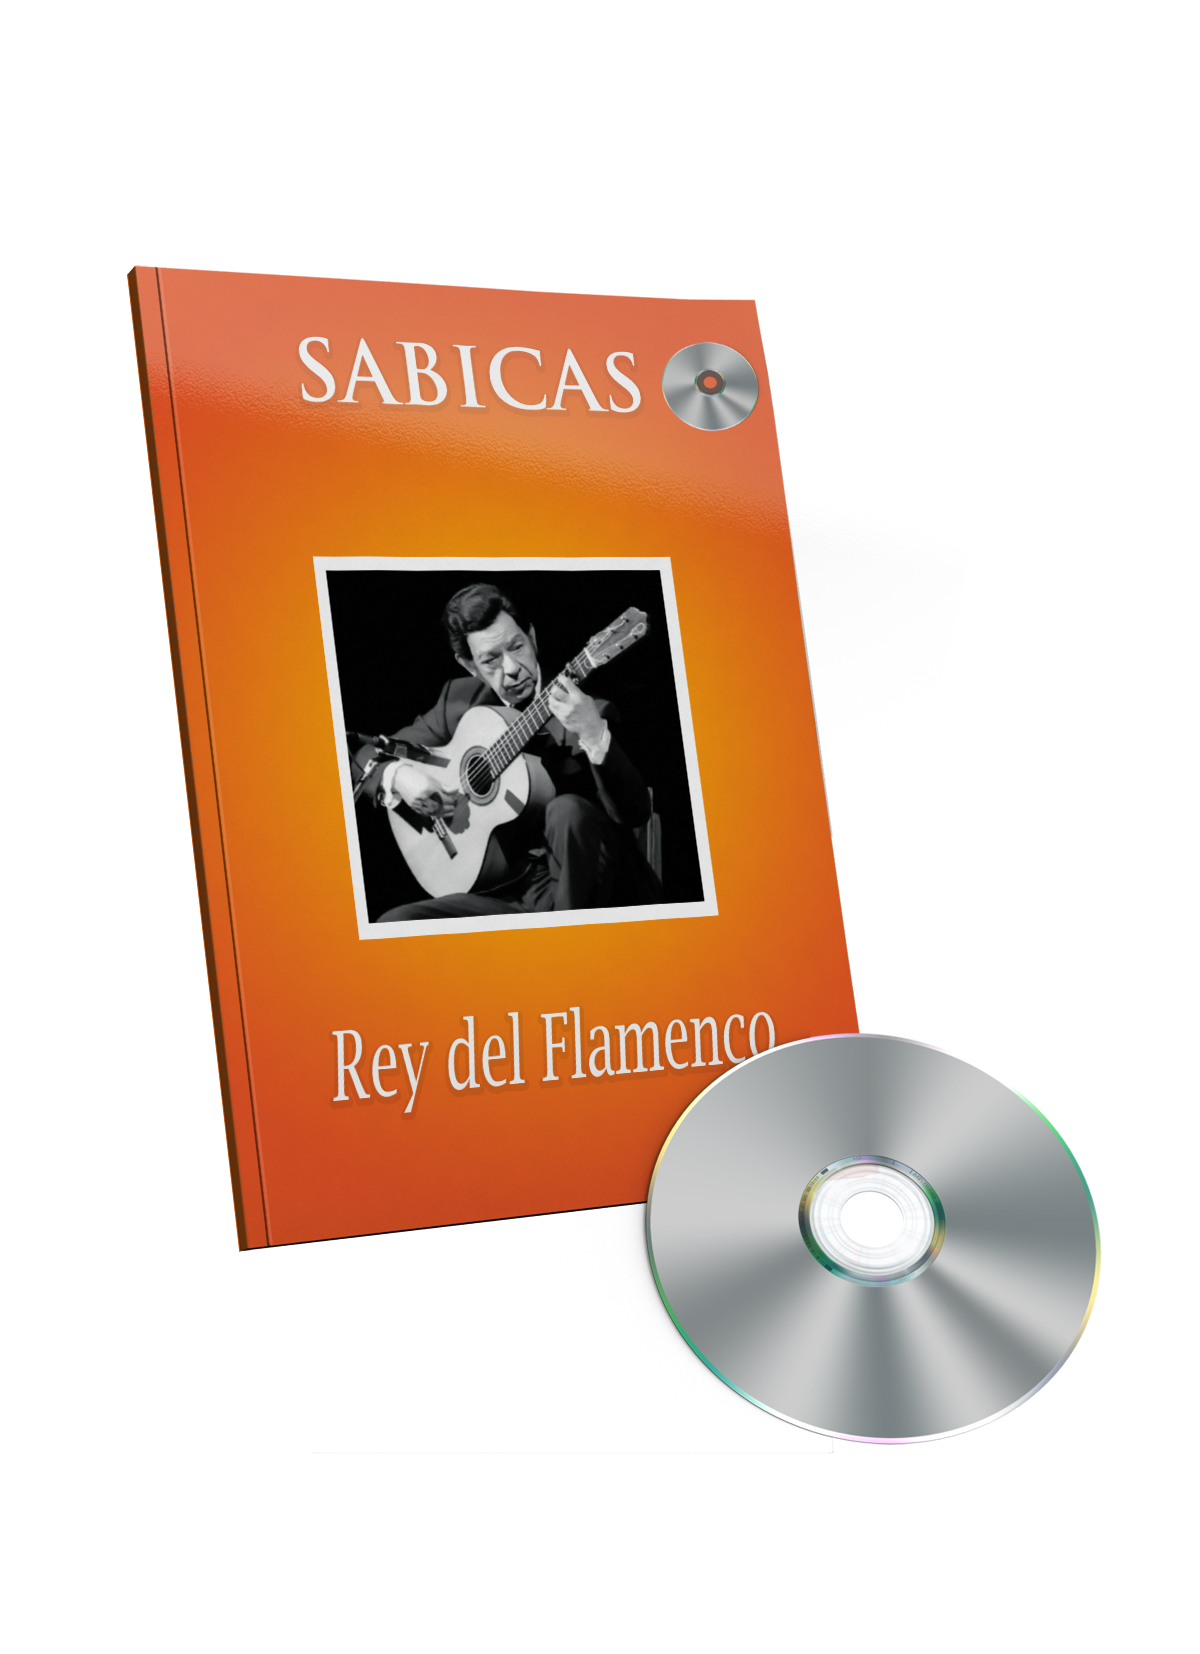 Sabicas libro de partituras CD - Rey del Flamenco